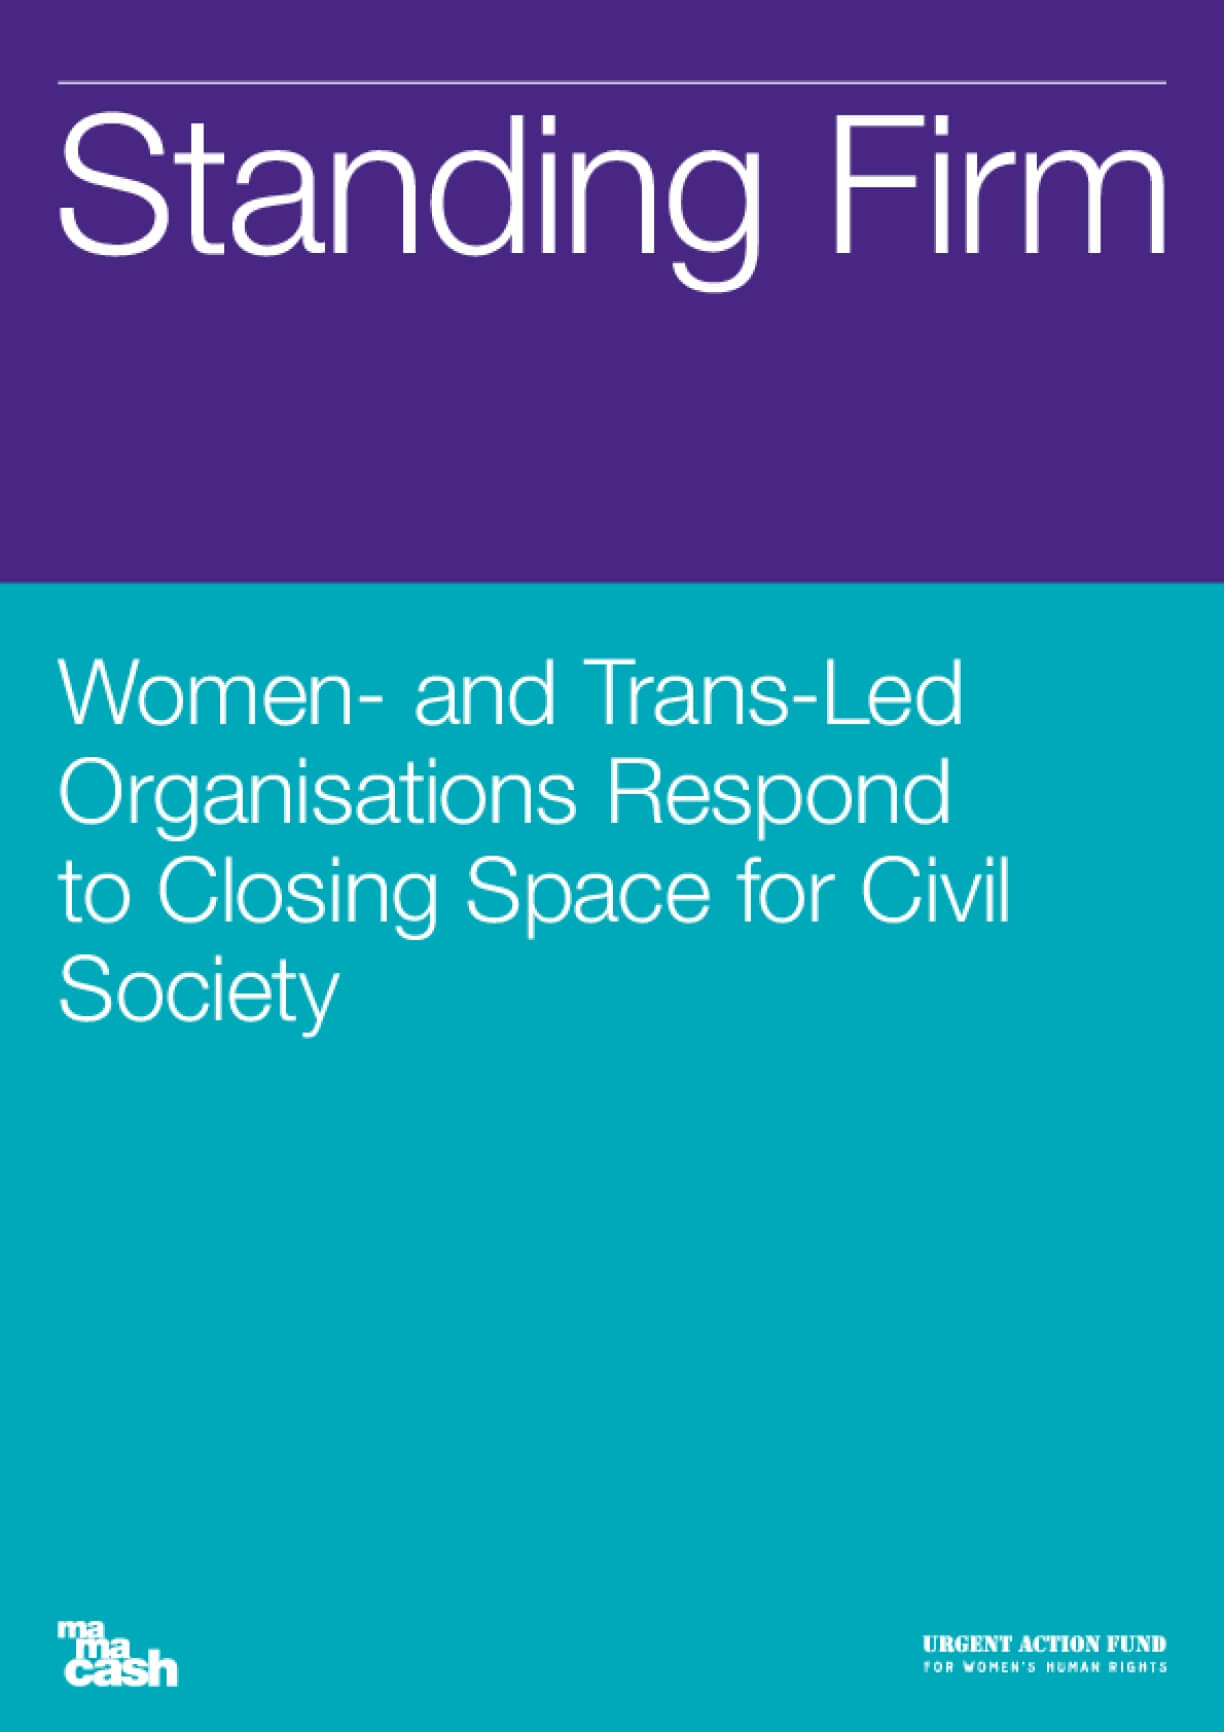 Standing Firm: Women- and Trans-Led Organisations Respond to Closing Space for Civil Society